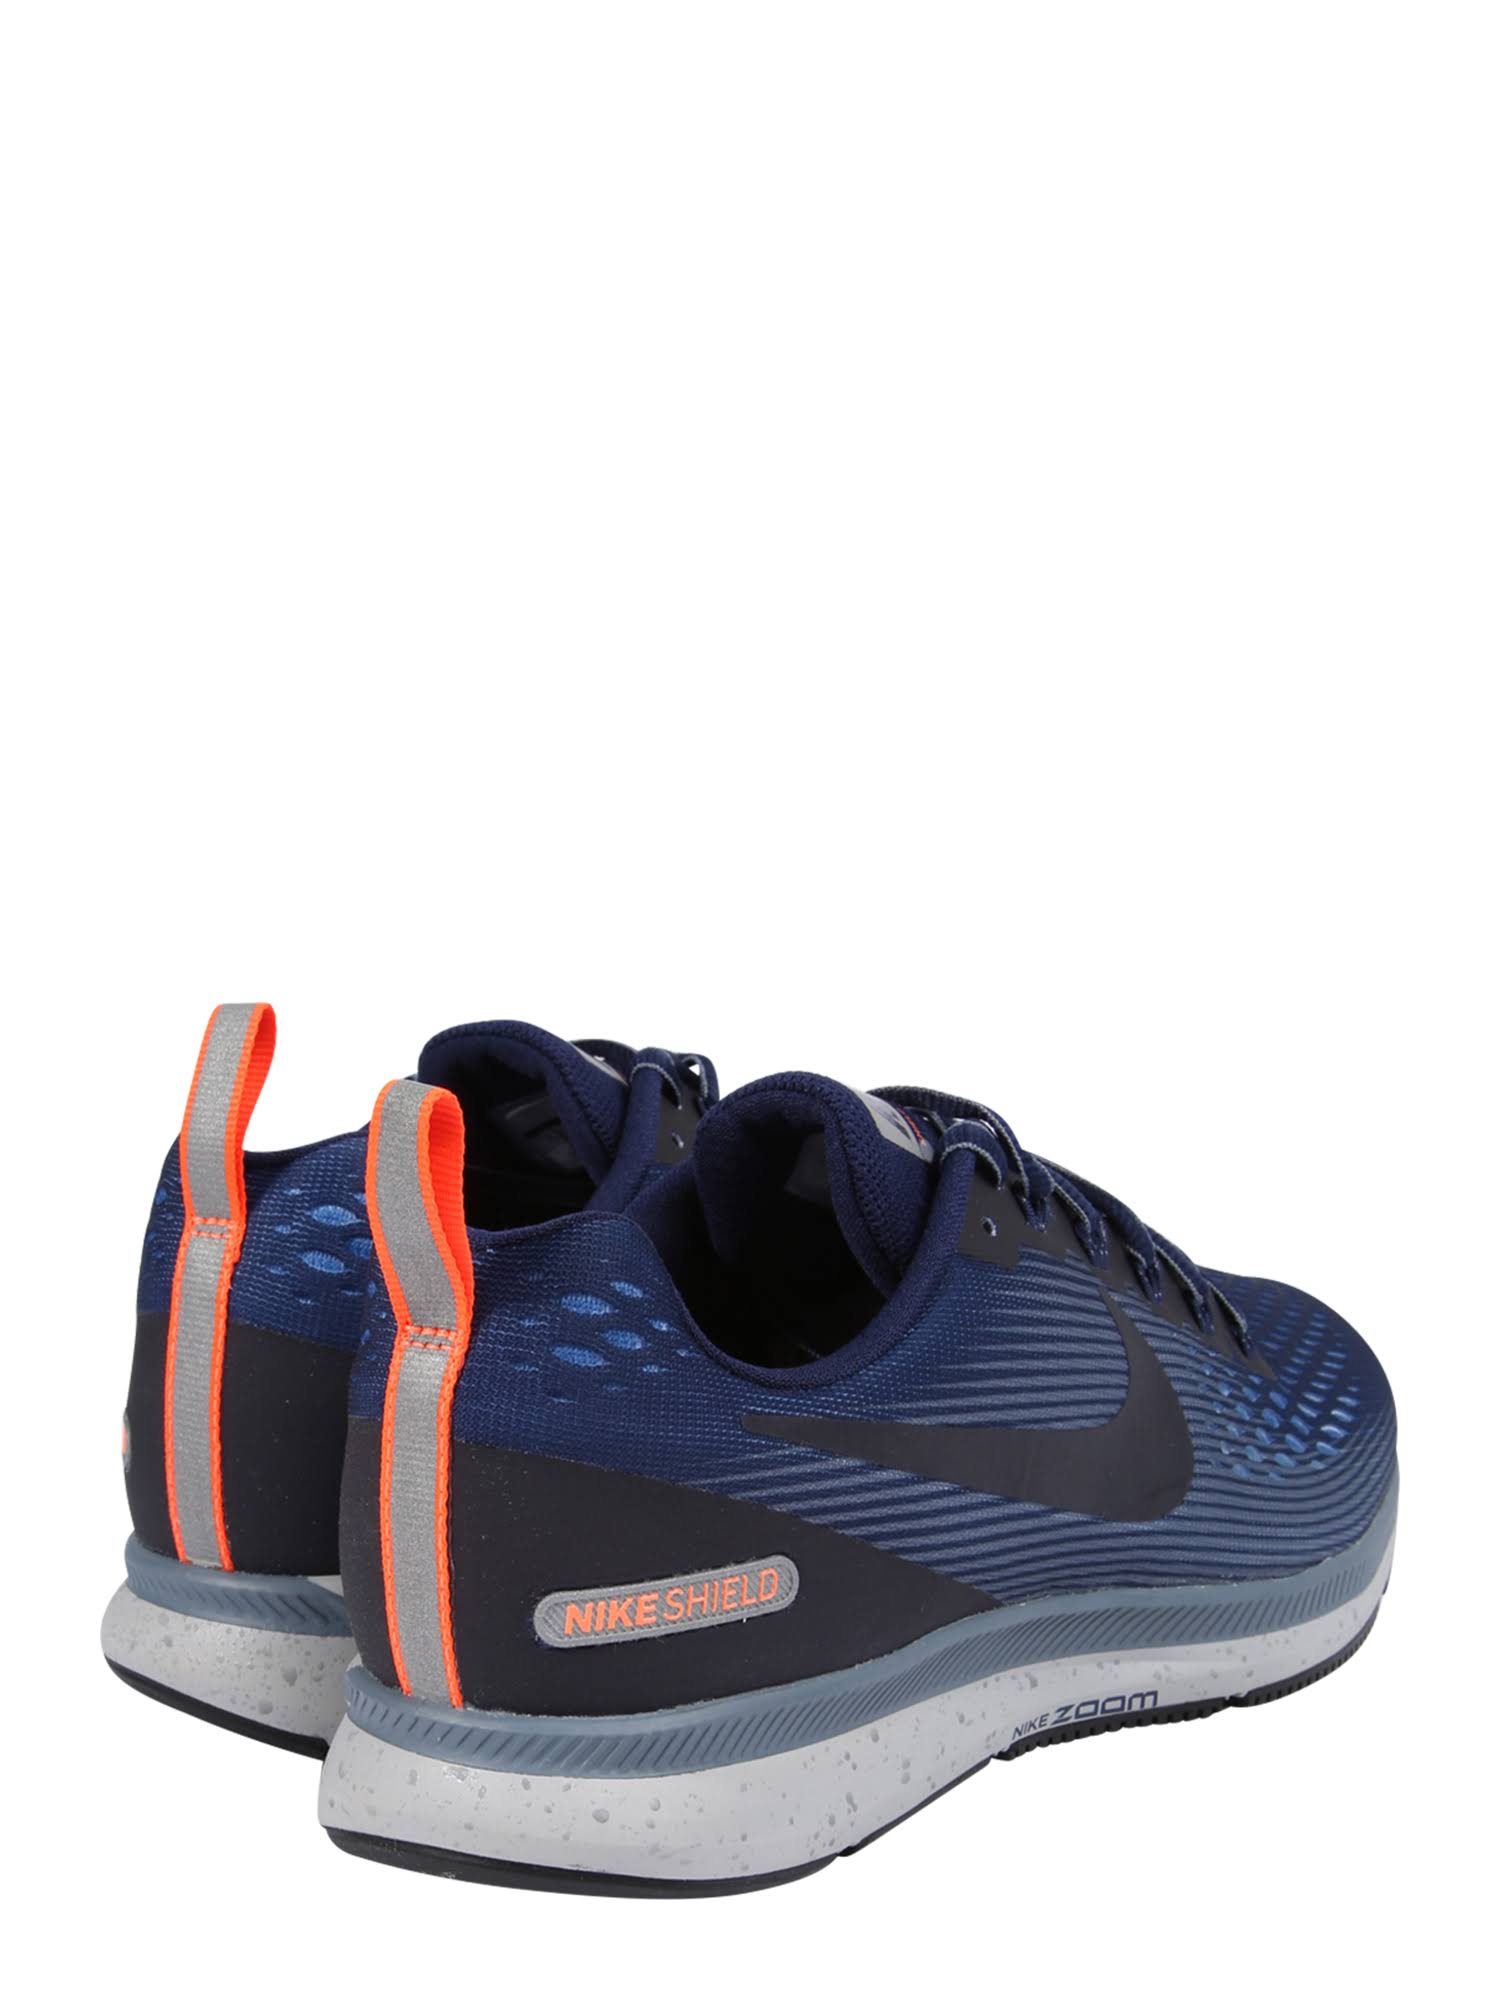 Shield obsidia Running Blau – Pegasus Blue Blaue 907327–400 Sneaker Nike binary Air Blue obsidian 34 Zoom armory qYB4ad